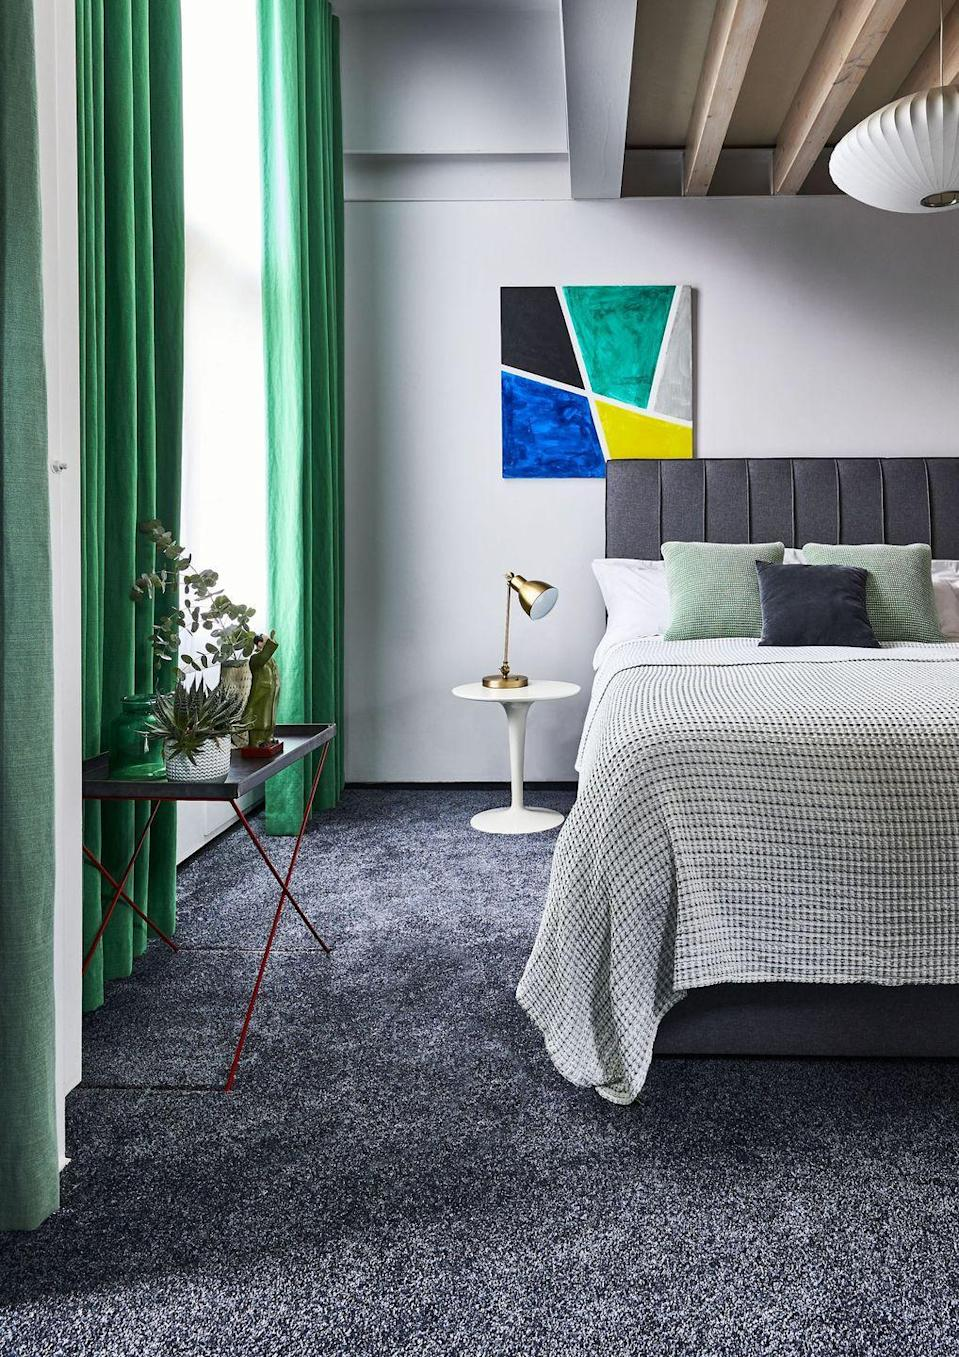 """<p>Introduce grey into your bedroom with carpet. It's a great base for so many colour schemes, either bold or subtle. This colour carpet is durable as it won't show the dirt and it has a textured look that adds another dimension – it's soft underfoot and adds a cosy feel to the room.<br></p><p>'Grey has consistently been one of the most popular home decorating shades over the last decade, and it shows no sign of slowing down any time soon,' says Jemma Dayman, Carpets Buyer at <a href=""""https://www.carpetright.co.uk/"""" rel=""""nofollow noopener"""" target=""""_blank"""" data-ylk=""""slk:Carpetright"""" class=""""link rapid-noclick-resp"""">Carpetright</a>. 'Given that the bedroom is our sanctuary, a calm space where we retreat to for rest, recuperation and to recover, it's no surprise that this soothing neutral hue is our go-to colour choice.'</p><p>Top tip: Don't forget to invest in good quality underlay, as this will not only increase insulation but also reduce wear over time and create an even softer feel underfoot.</p><p>Pictured: <a href=""""https://www.carpetright.co.uk/carpets/super-sublime-saxony-carpet/"""" rel=""""nofollow noopener"""" target=""""_blank"""" data-ylk=""""slk:Super Sublime Saxony Carpet in Midnight Tonal, House Beautiful collection at Carpetright"""" class=""""link rapid-noclick-resp"""">Super Sublime Saxony Carpet in Midnight Tonal, House Beautiful collection at Carpetright</a></p>"""